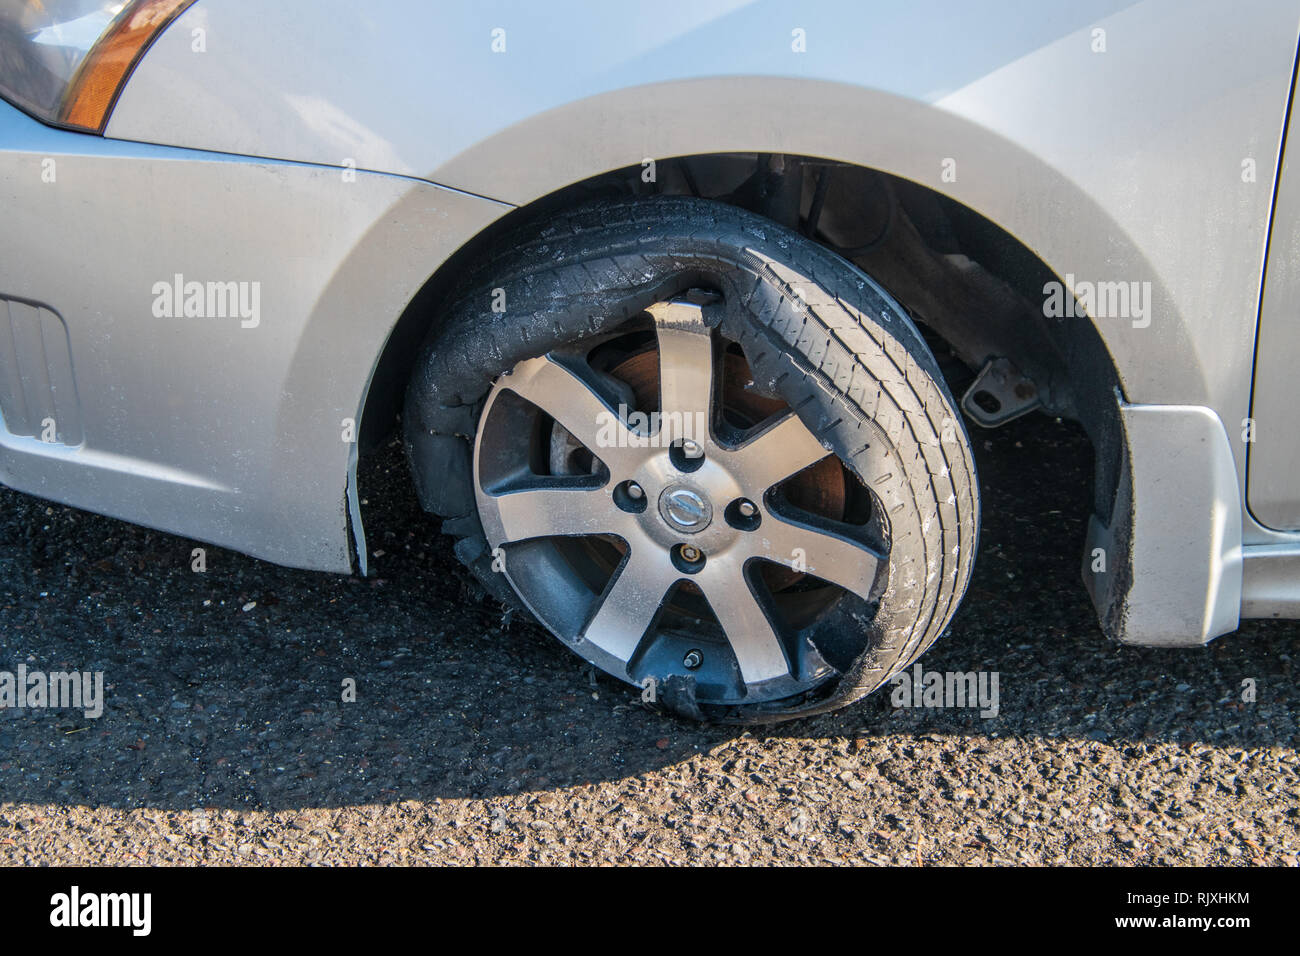 Blowout Stock Photos & Blowout Stock Images - Alamy